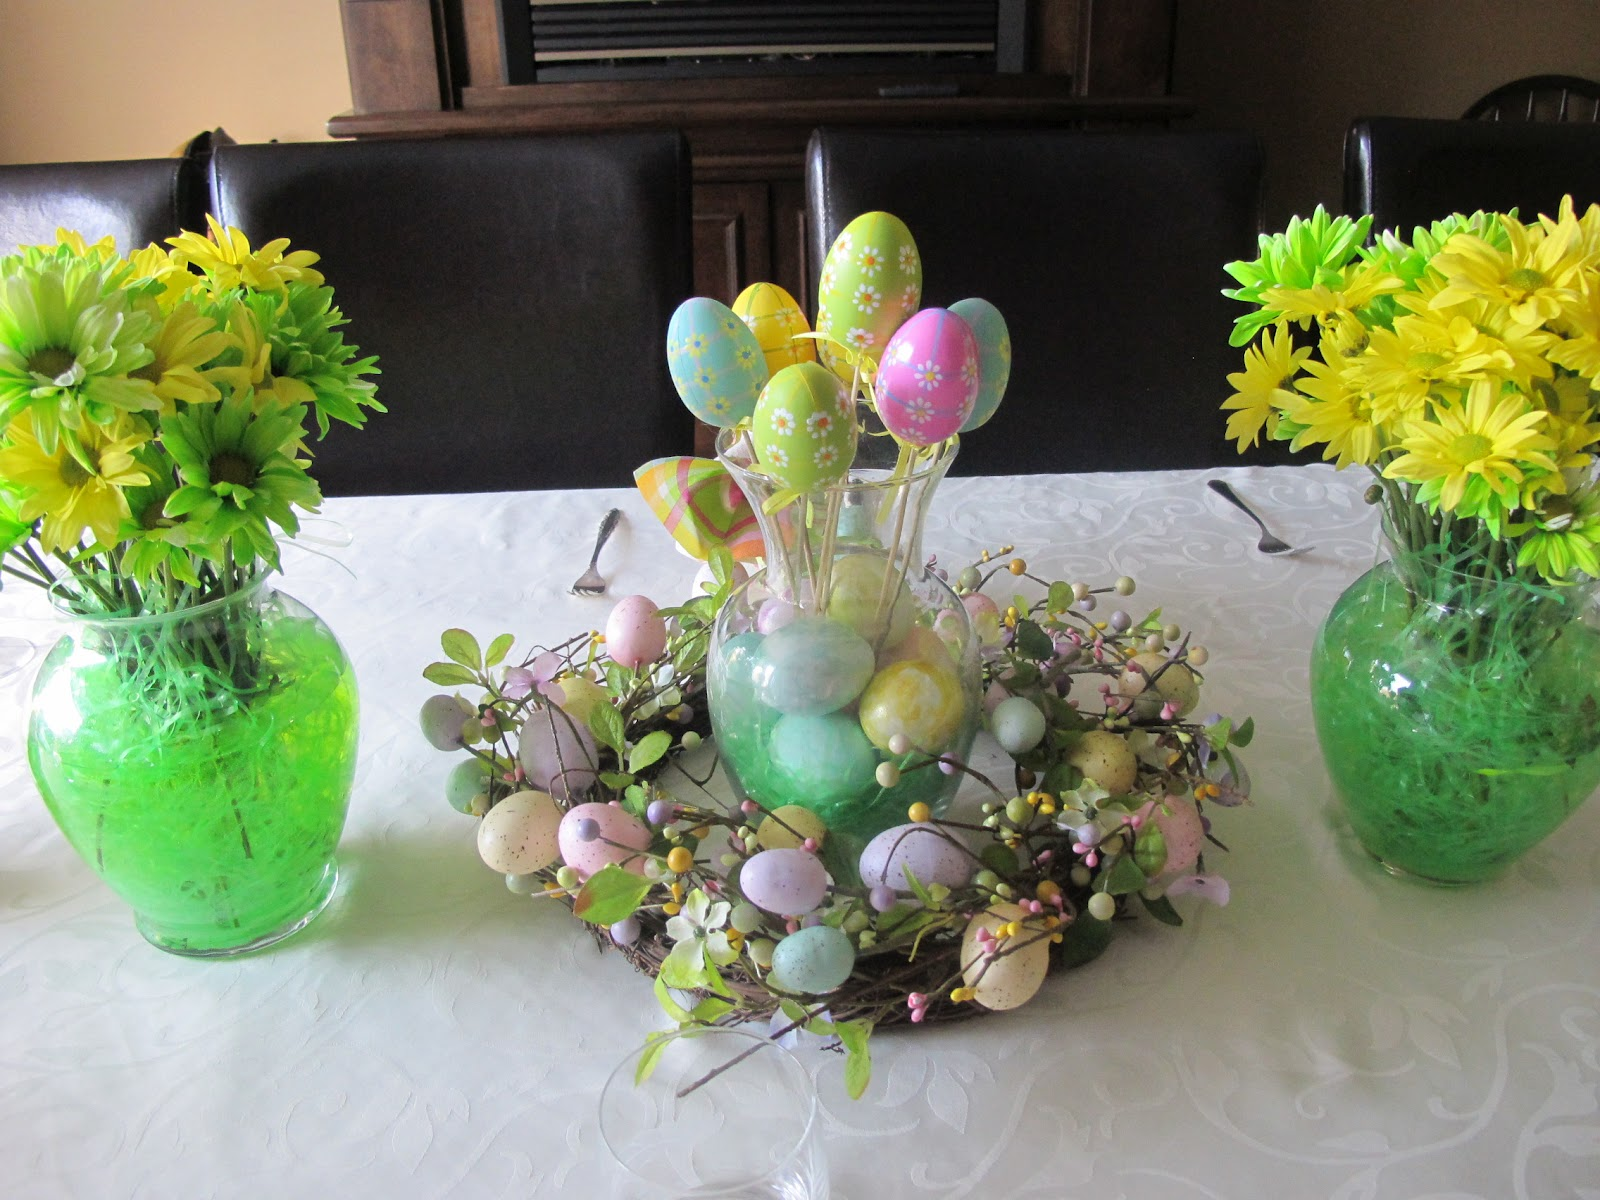 I Purchased An Easter Wreath And Set A Clear Vase Filled With Eggs Which My Kids Had Painted Then Put In Some Egg Picks Into The